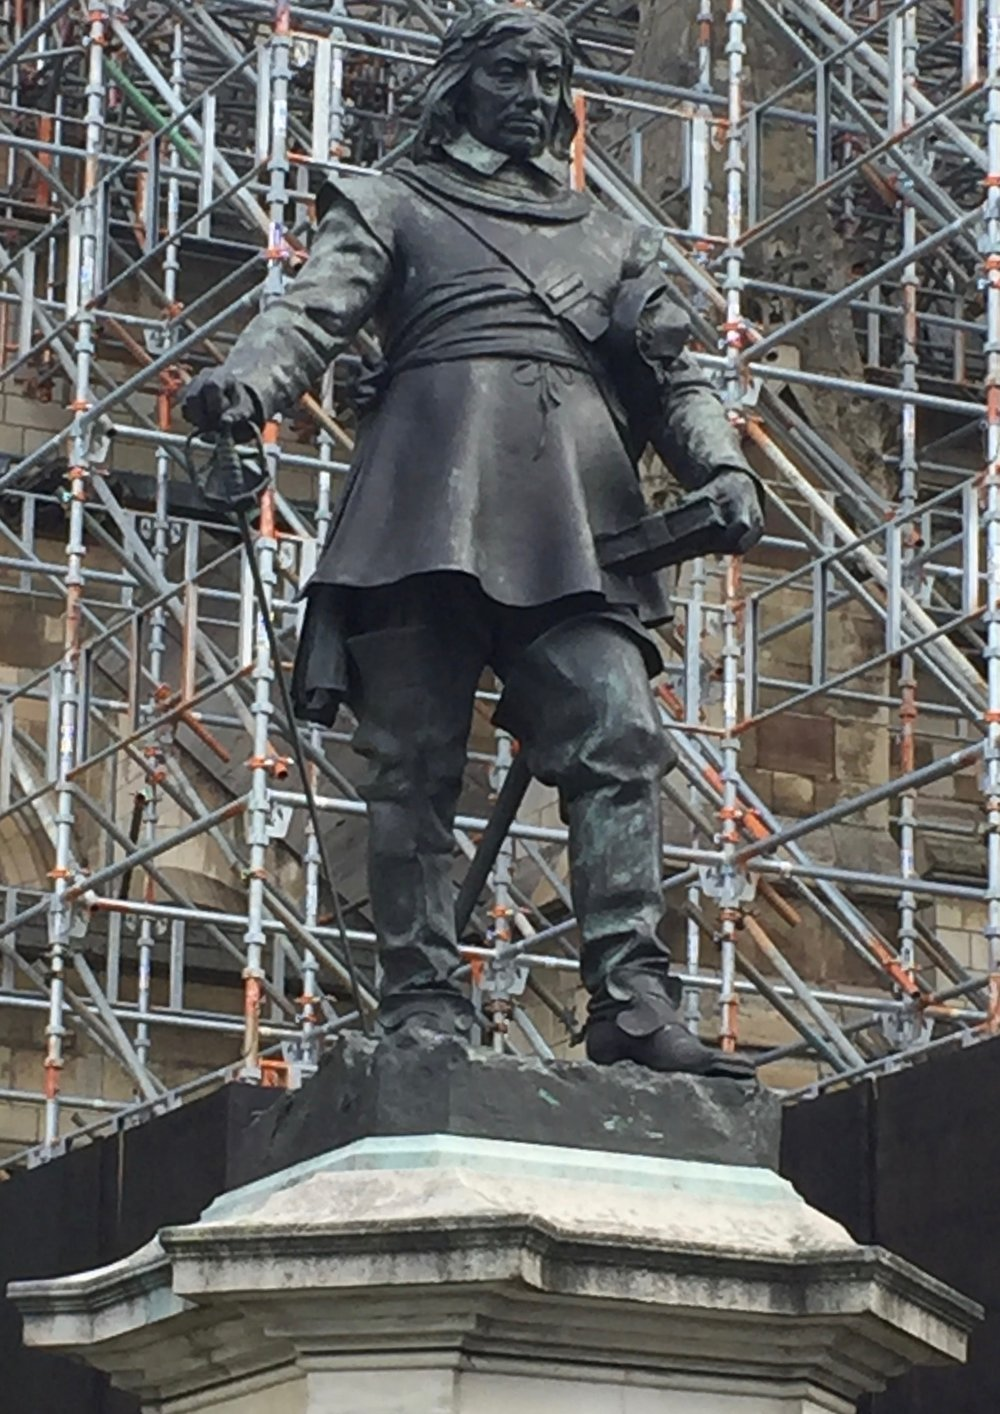 Statue of Oliver Cromwell at Westminster. Image by Rachel Hammersley